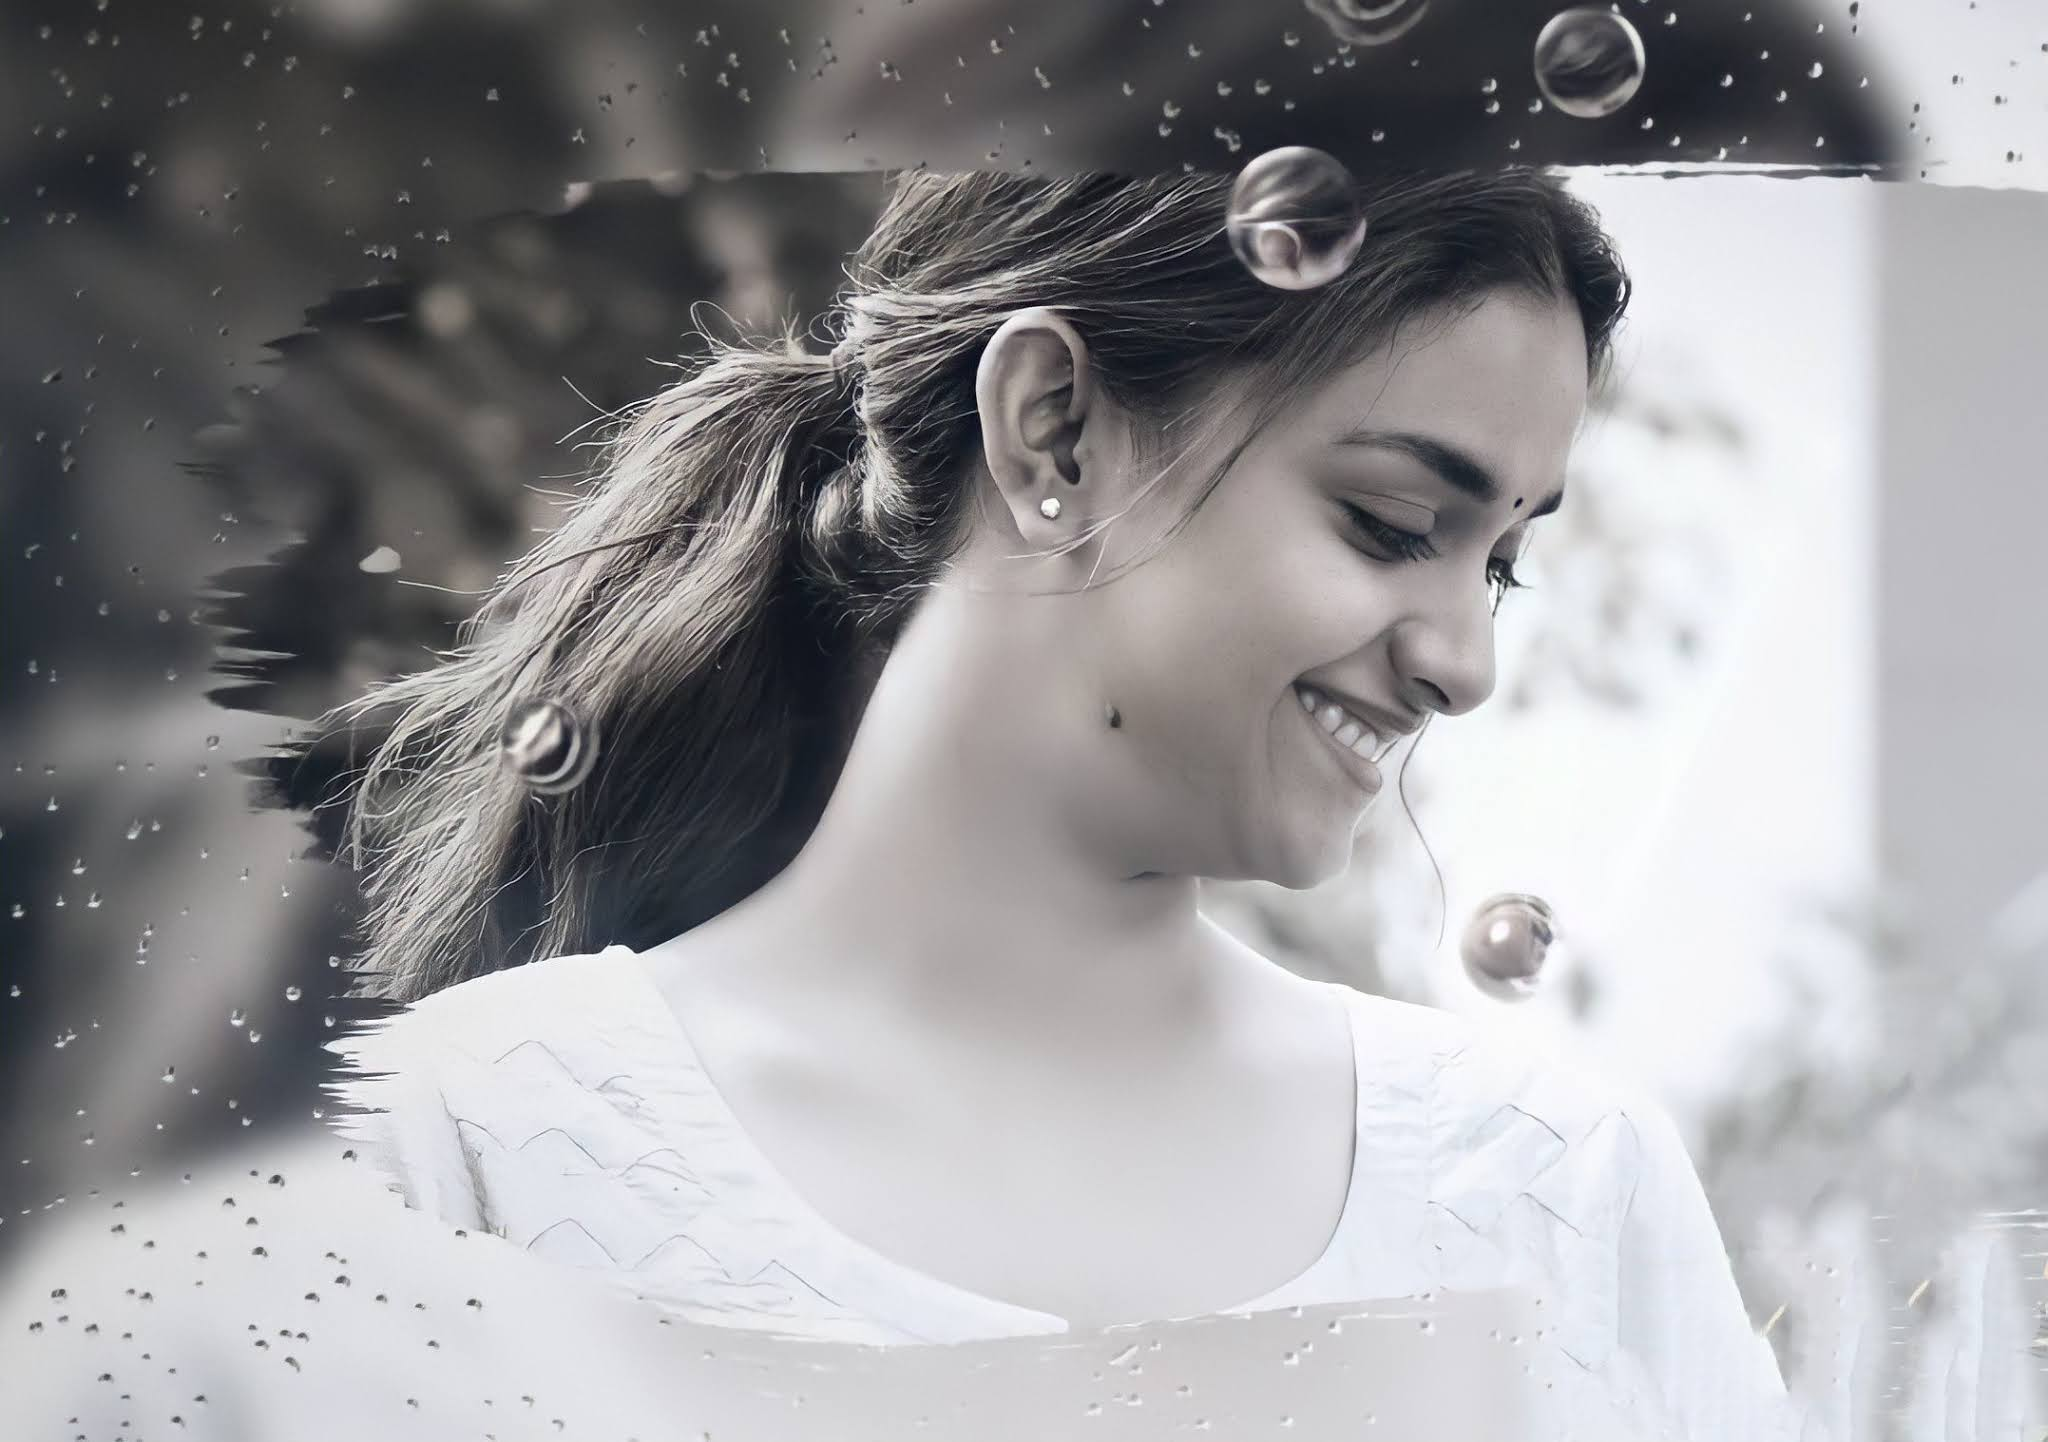 Keerthy Suresh Awesome Lovely Smile from RangDe 1